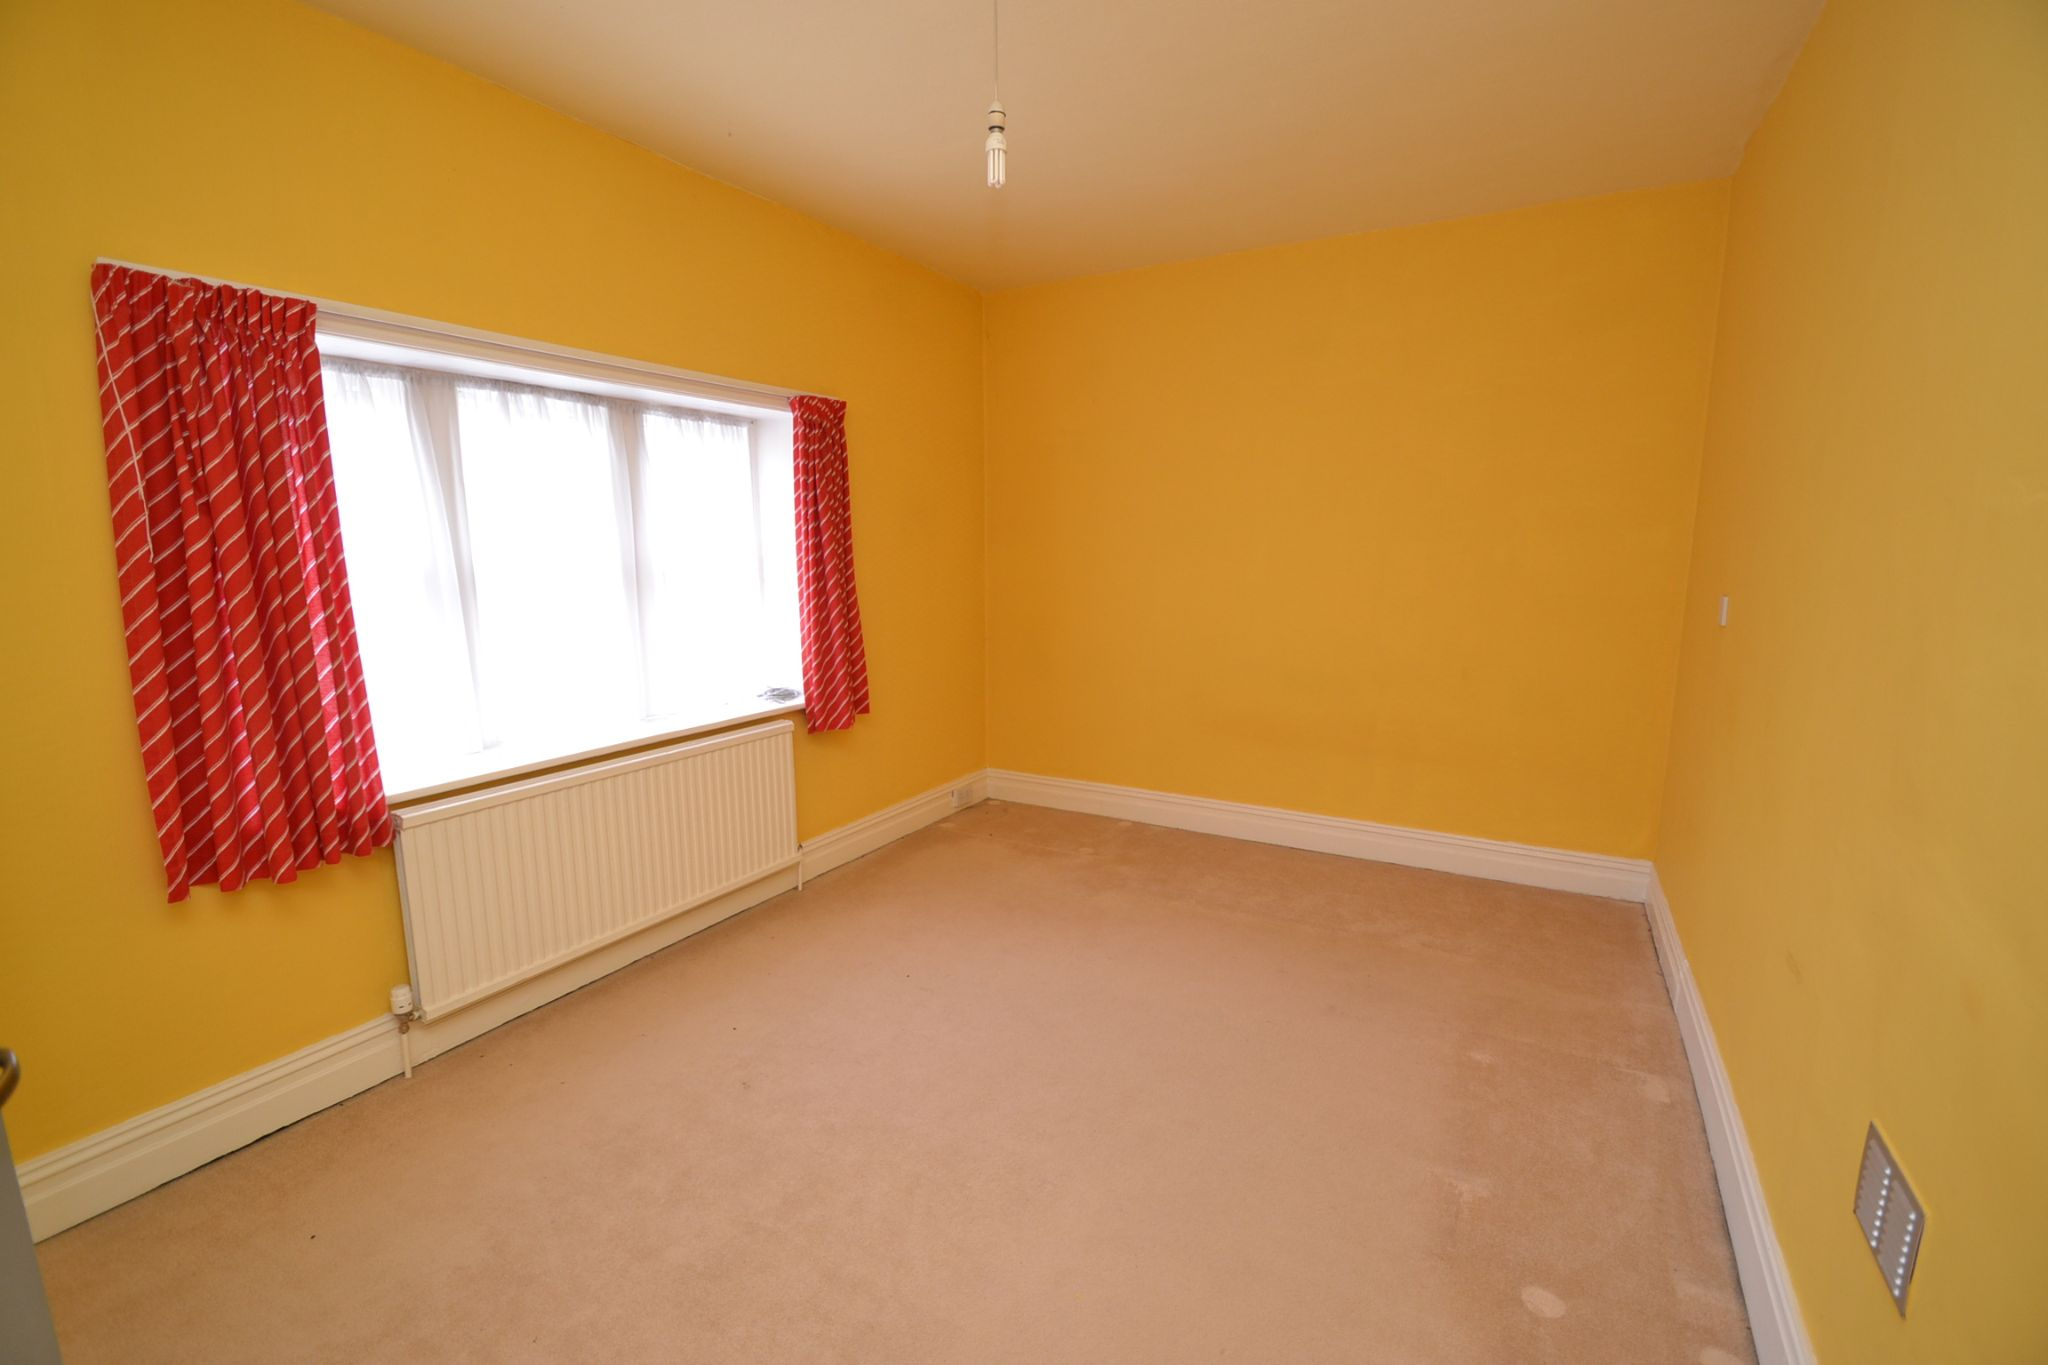 6 Bedroom Semi-detached House For Sale - Photograph 15